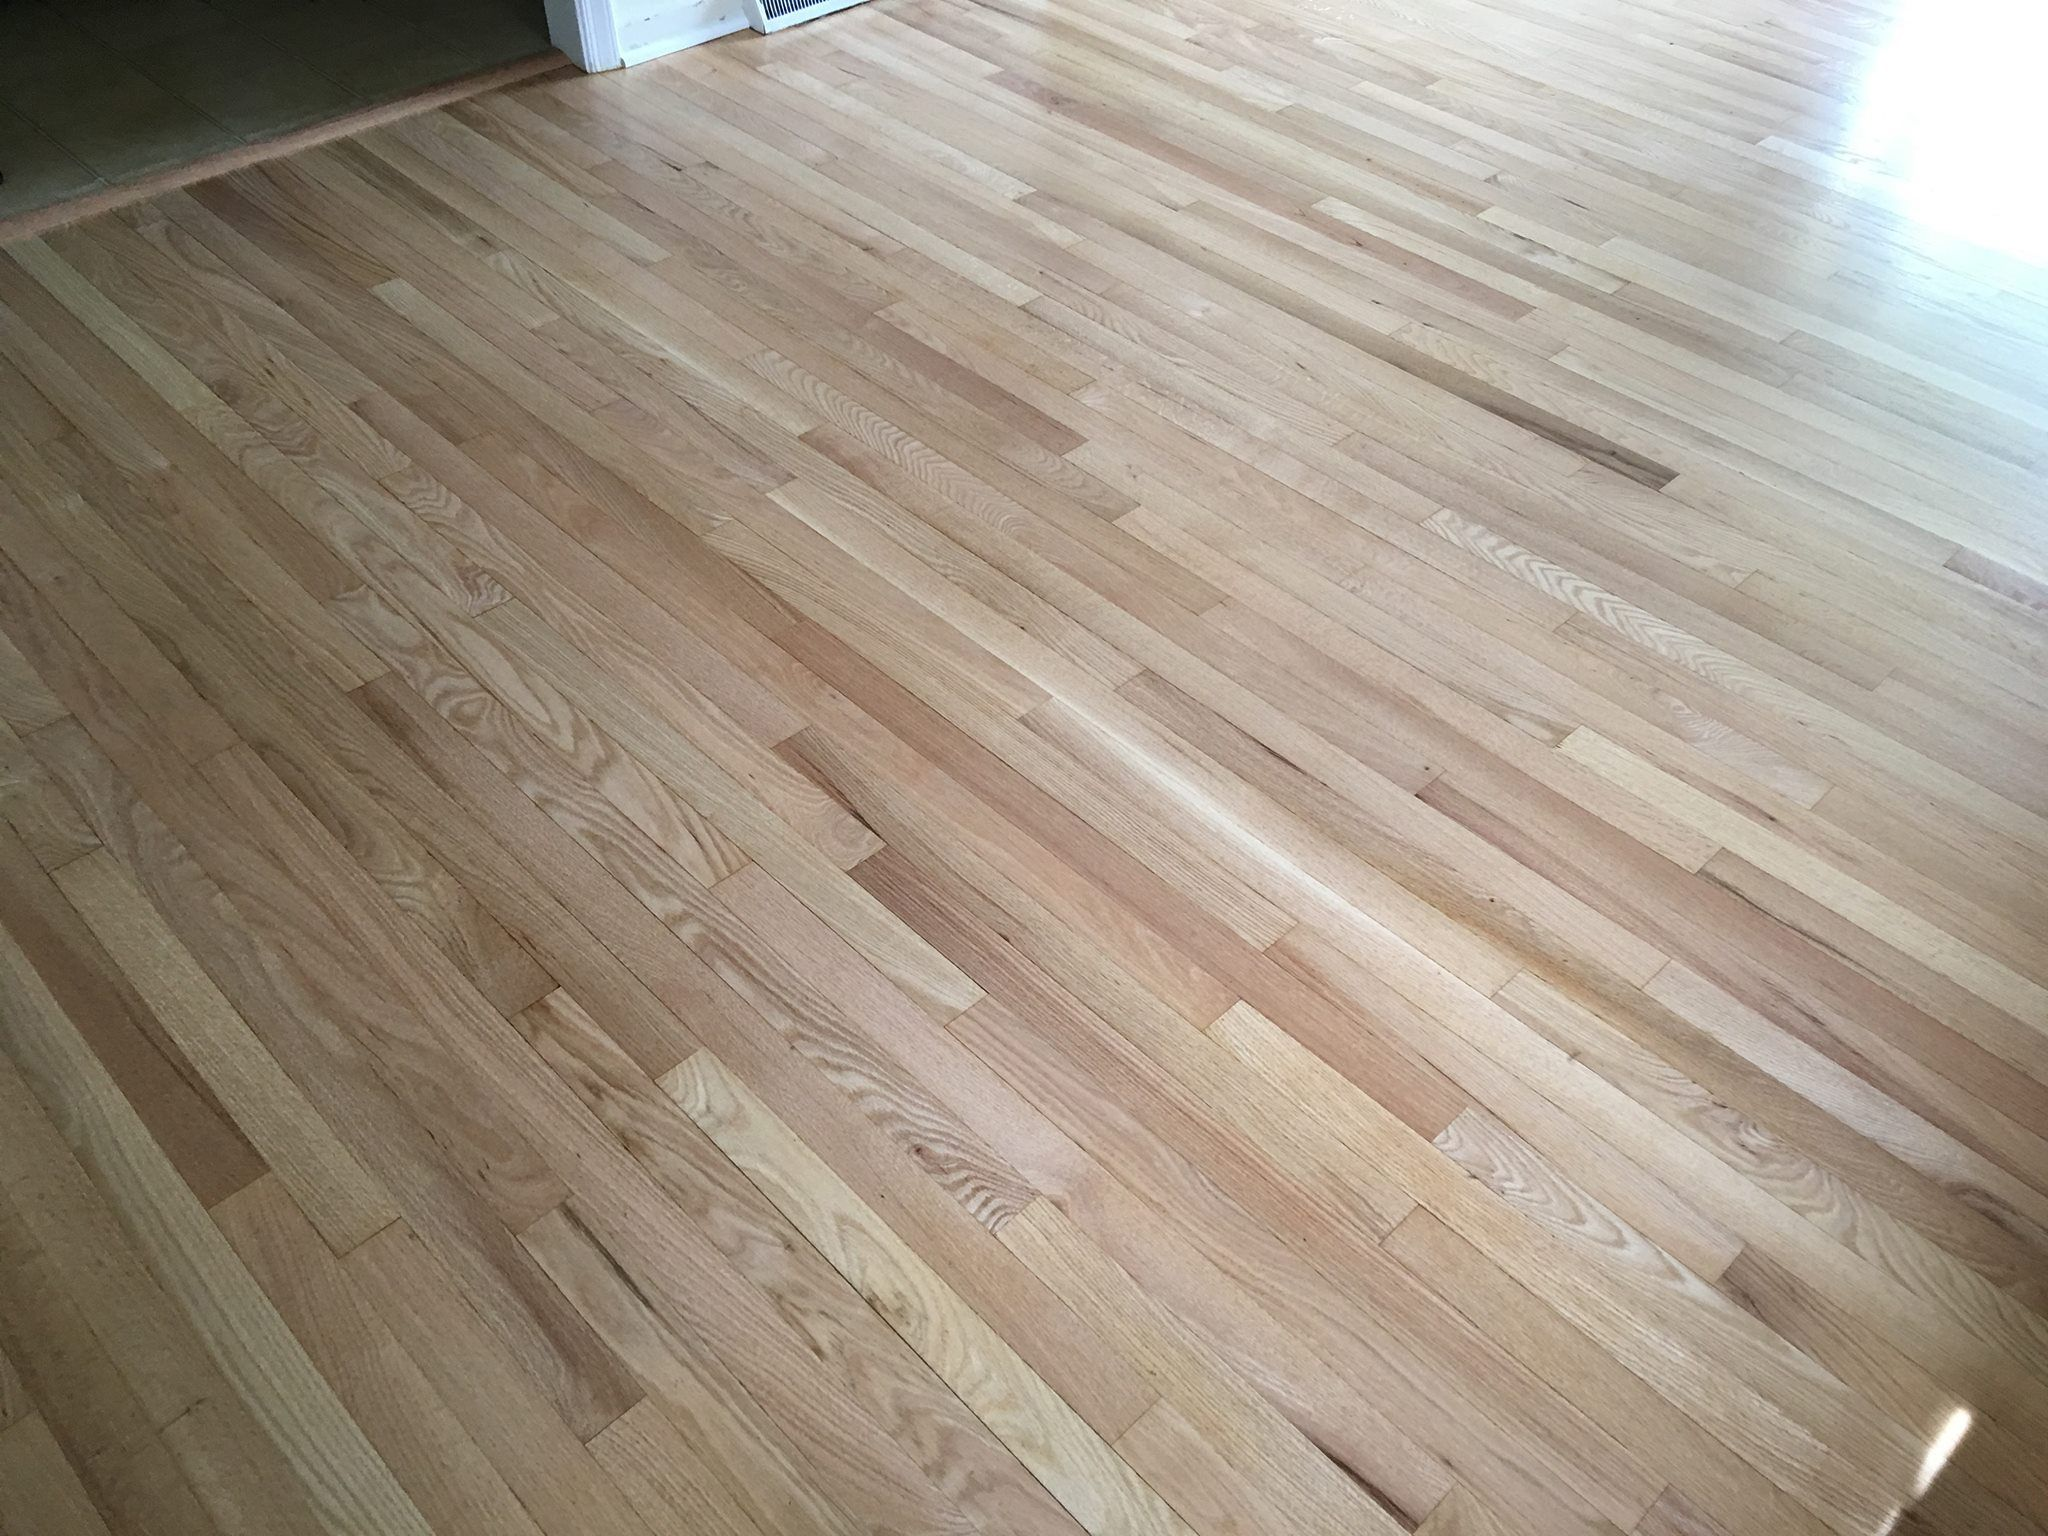 Red Oak Floors Refinished with Pro Image Satin Red oak